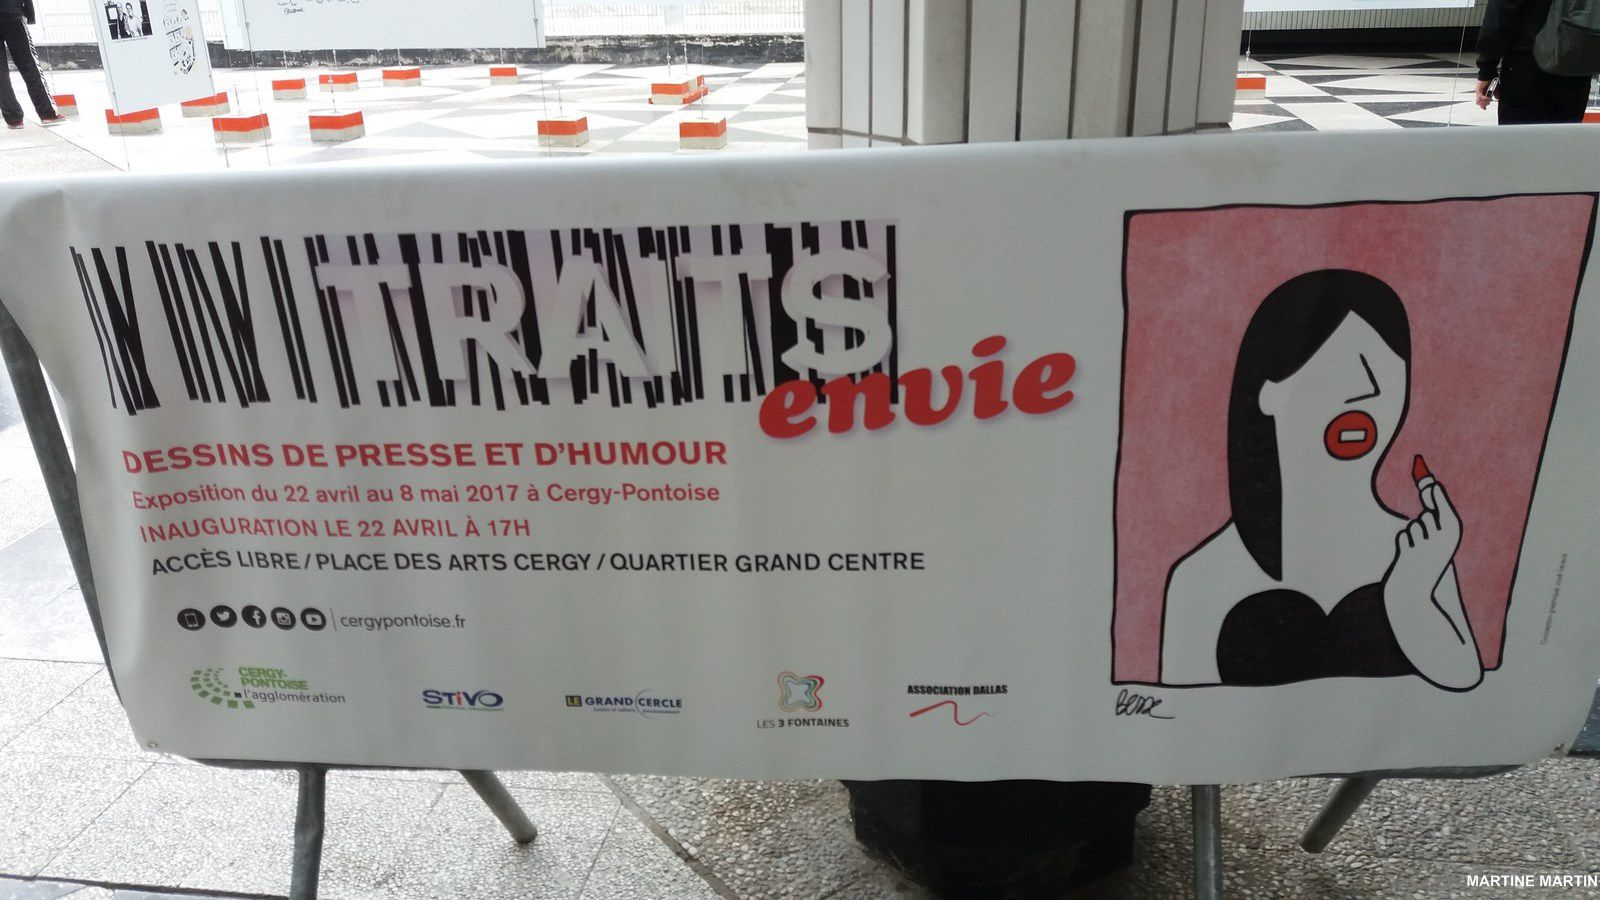 TRAITS ENVIE - Dessins de presse et d'humour à Cergy